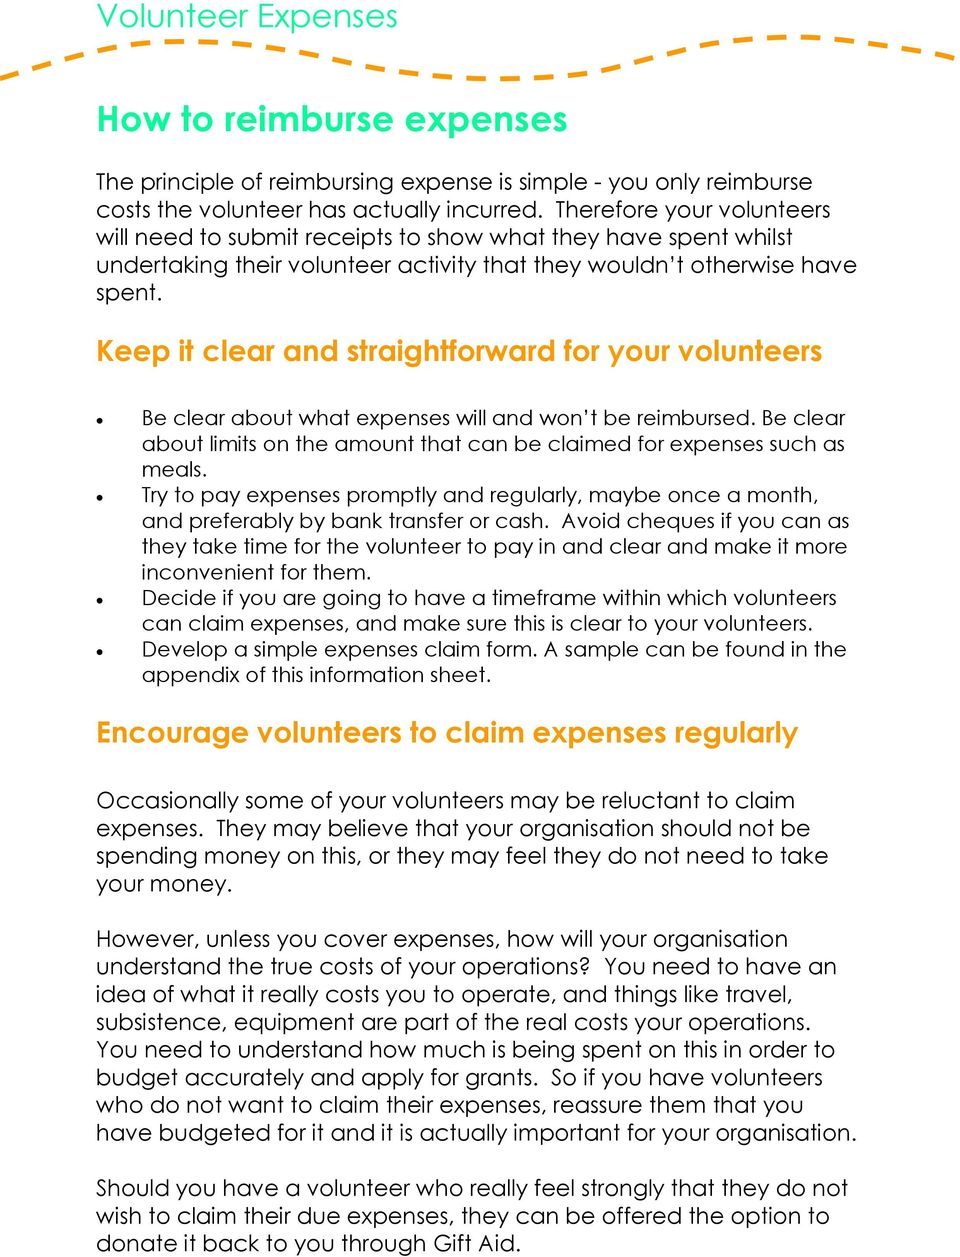 Keep it clear and straightforward for your volunteers Be clear about what expenses will and won t be reimbursed. Be clear about limits on the amount that can be claimed for expenses such as meals.